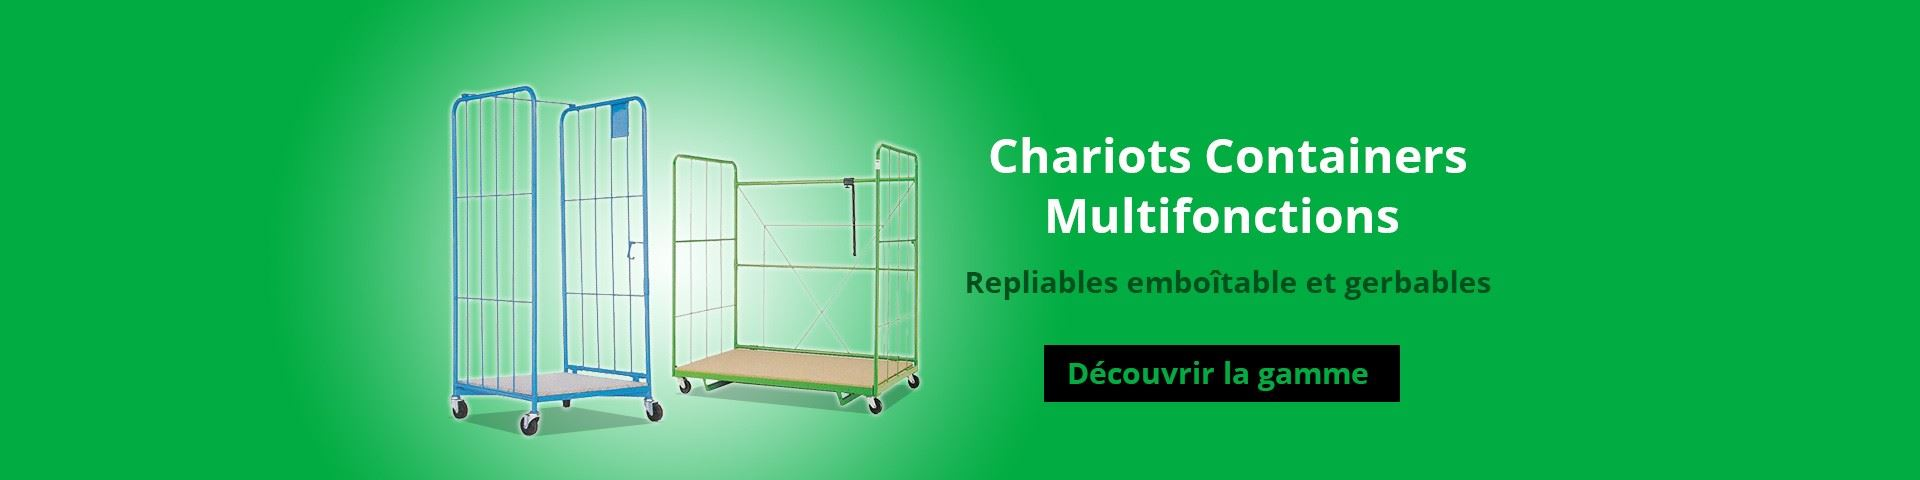 Chariots Containers Multifonctions